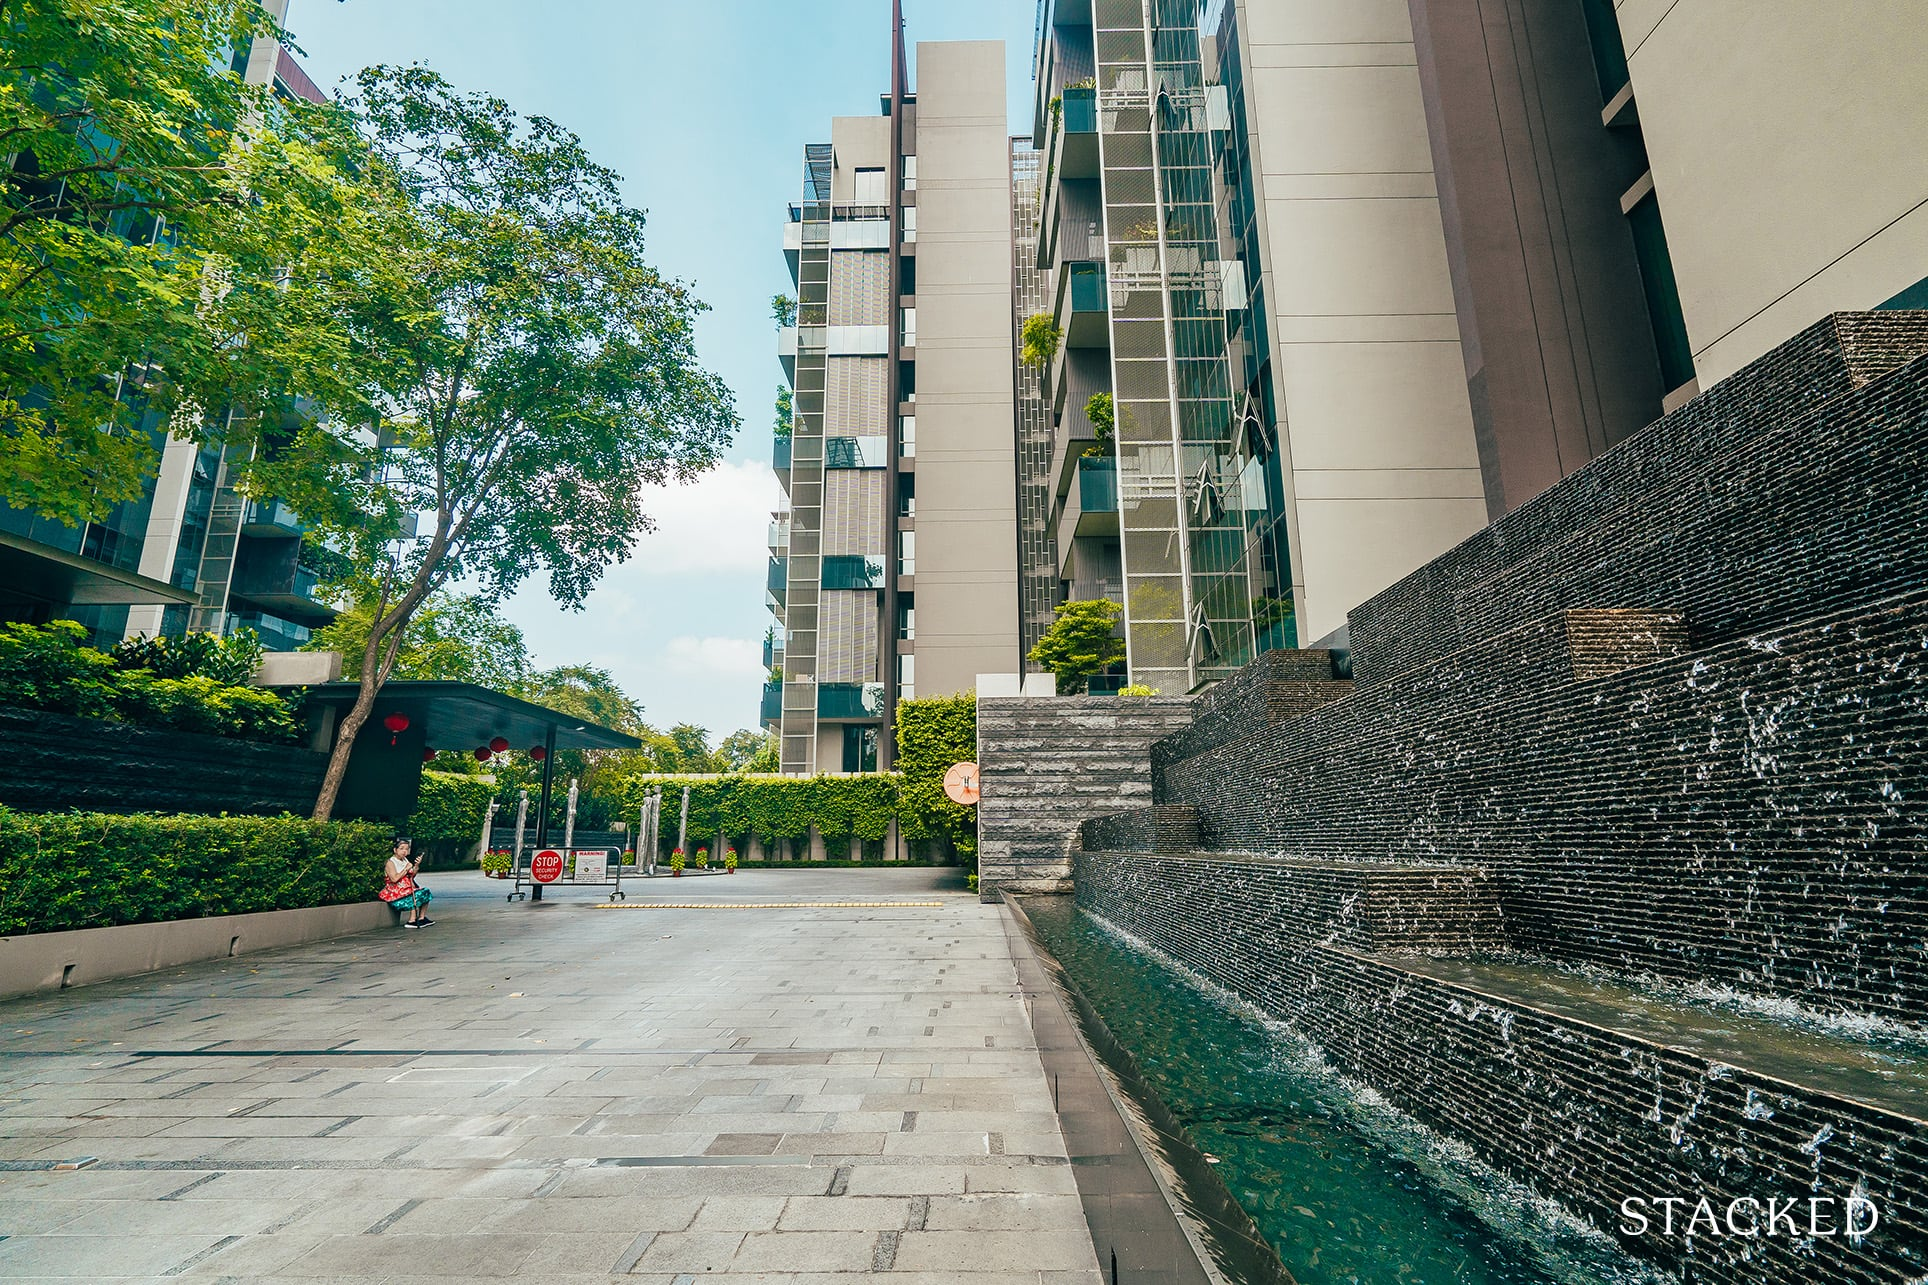 Leedon residence entrance water feature